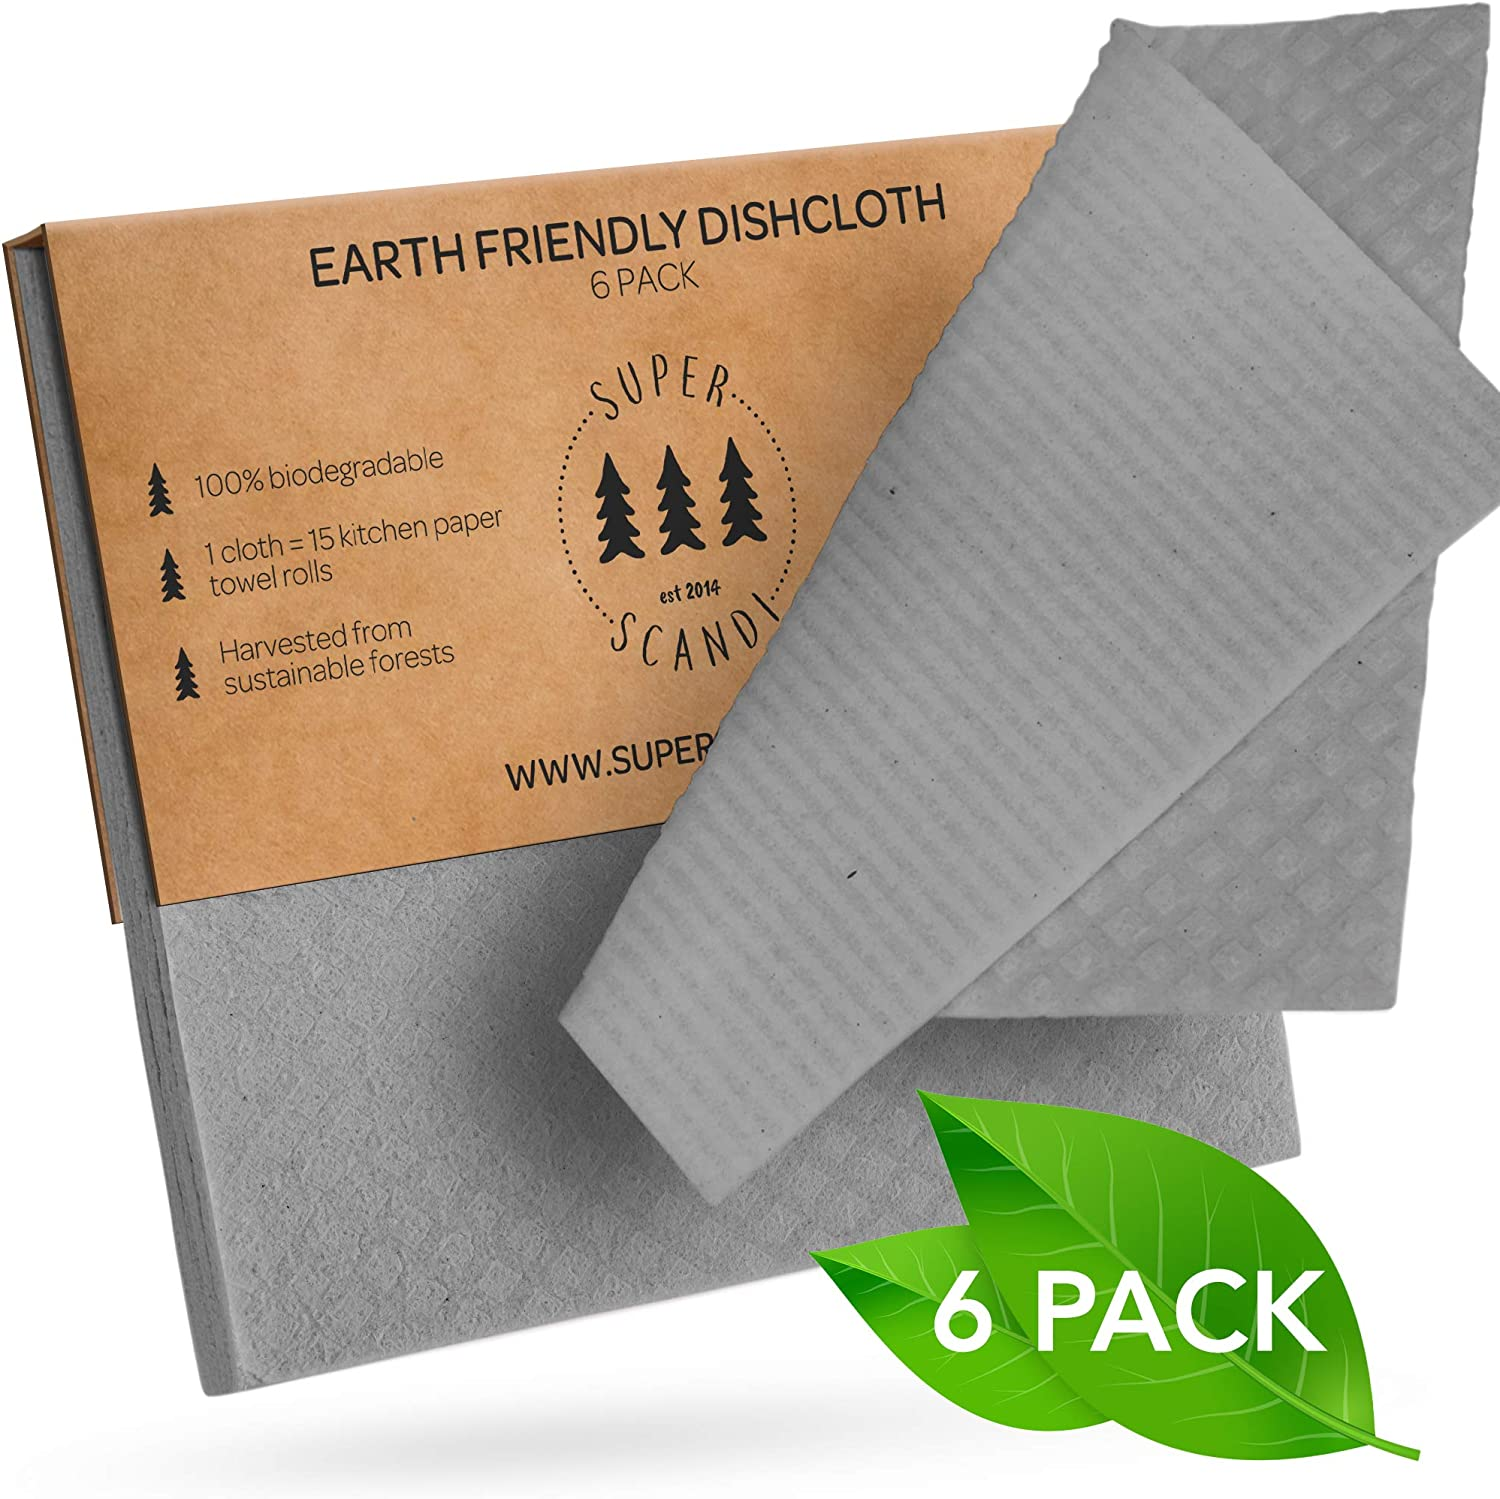 Superscandi Swedish Dishcloths Environment Friendly Biodegradable Wipes Reusable And Sustainable Cellulose Sponge Kitchen Cleaning Cloths Küche Haushalt